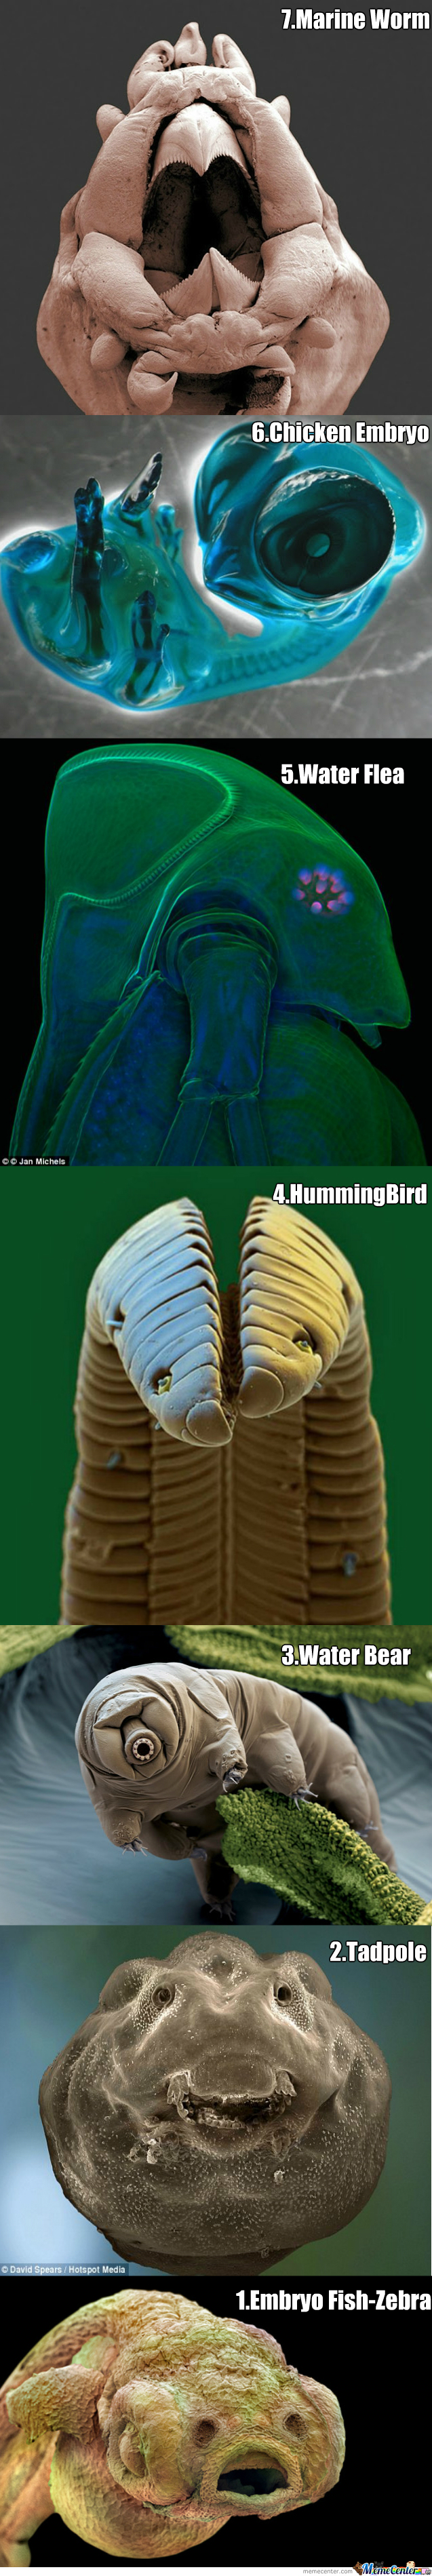 7 Amazing Creatures In A Microscope